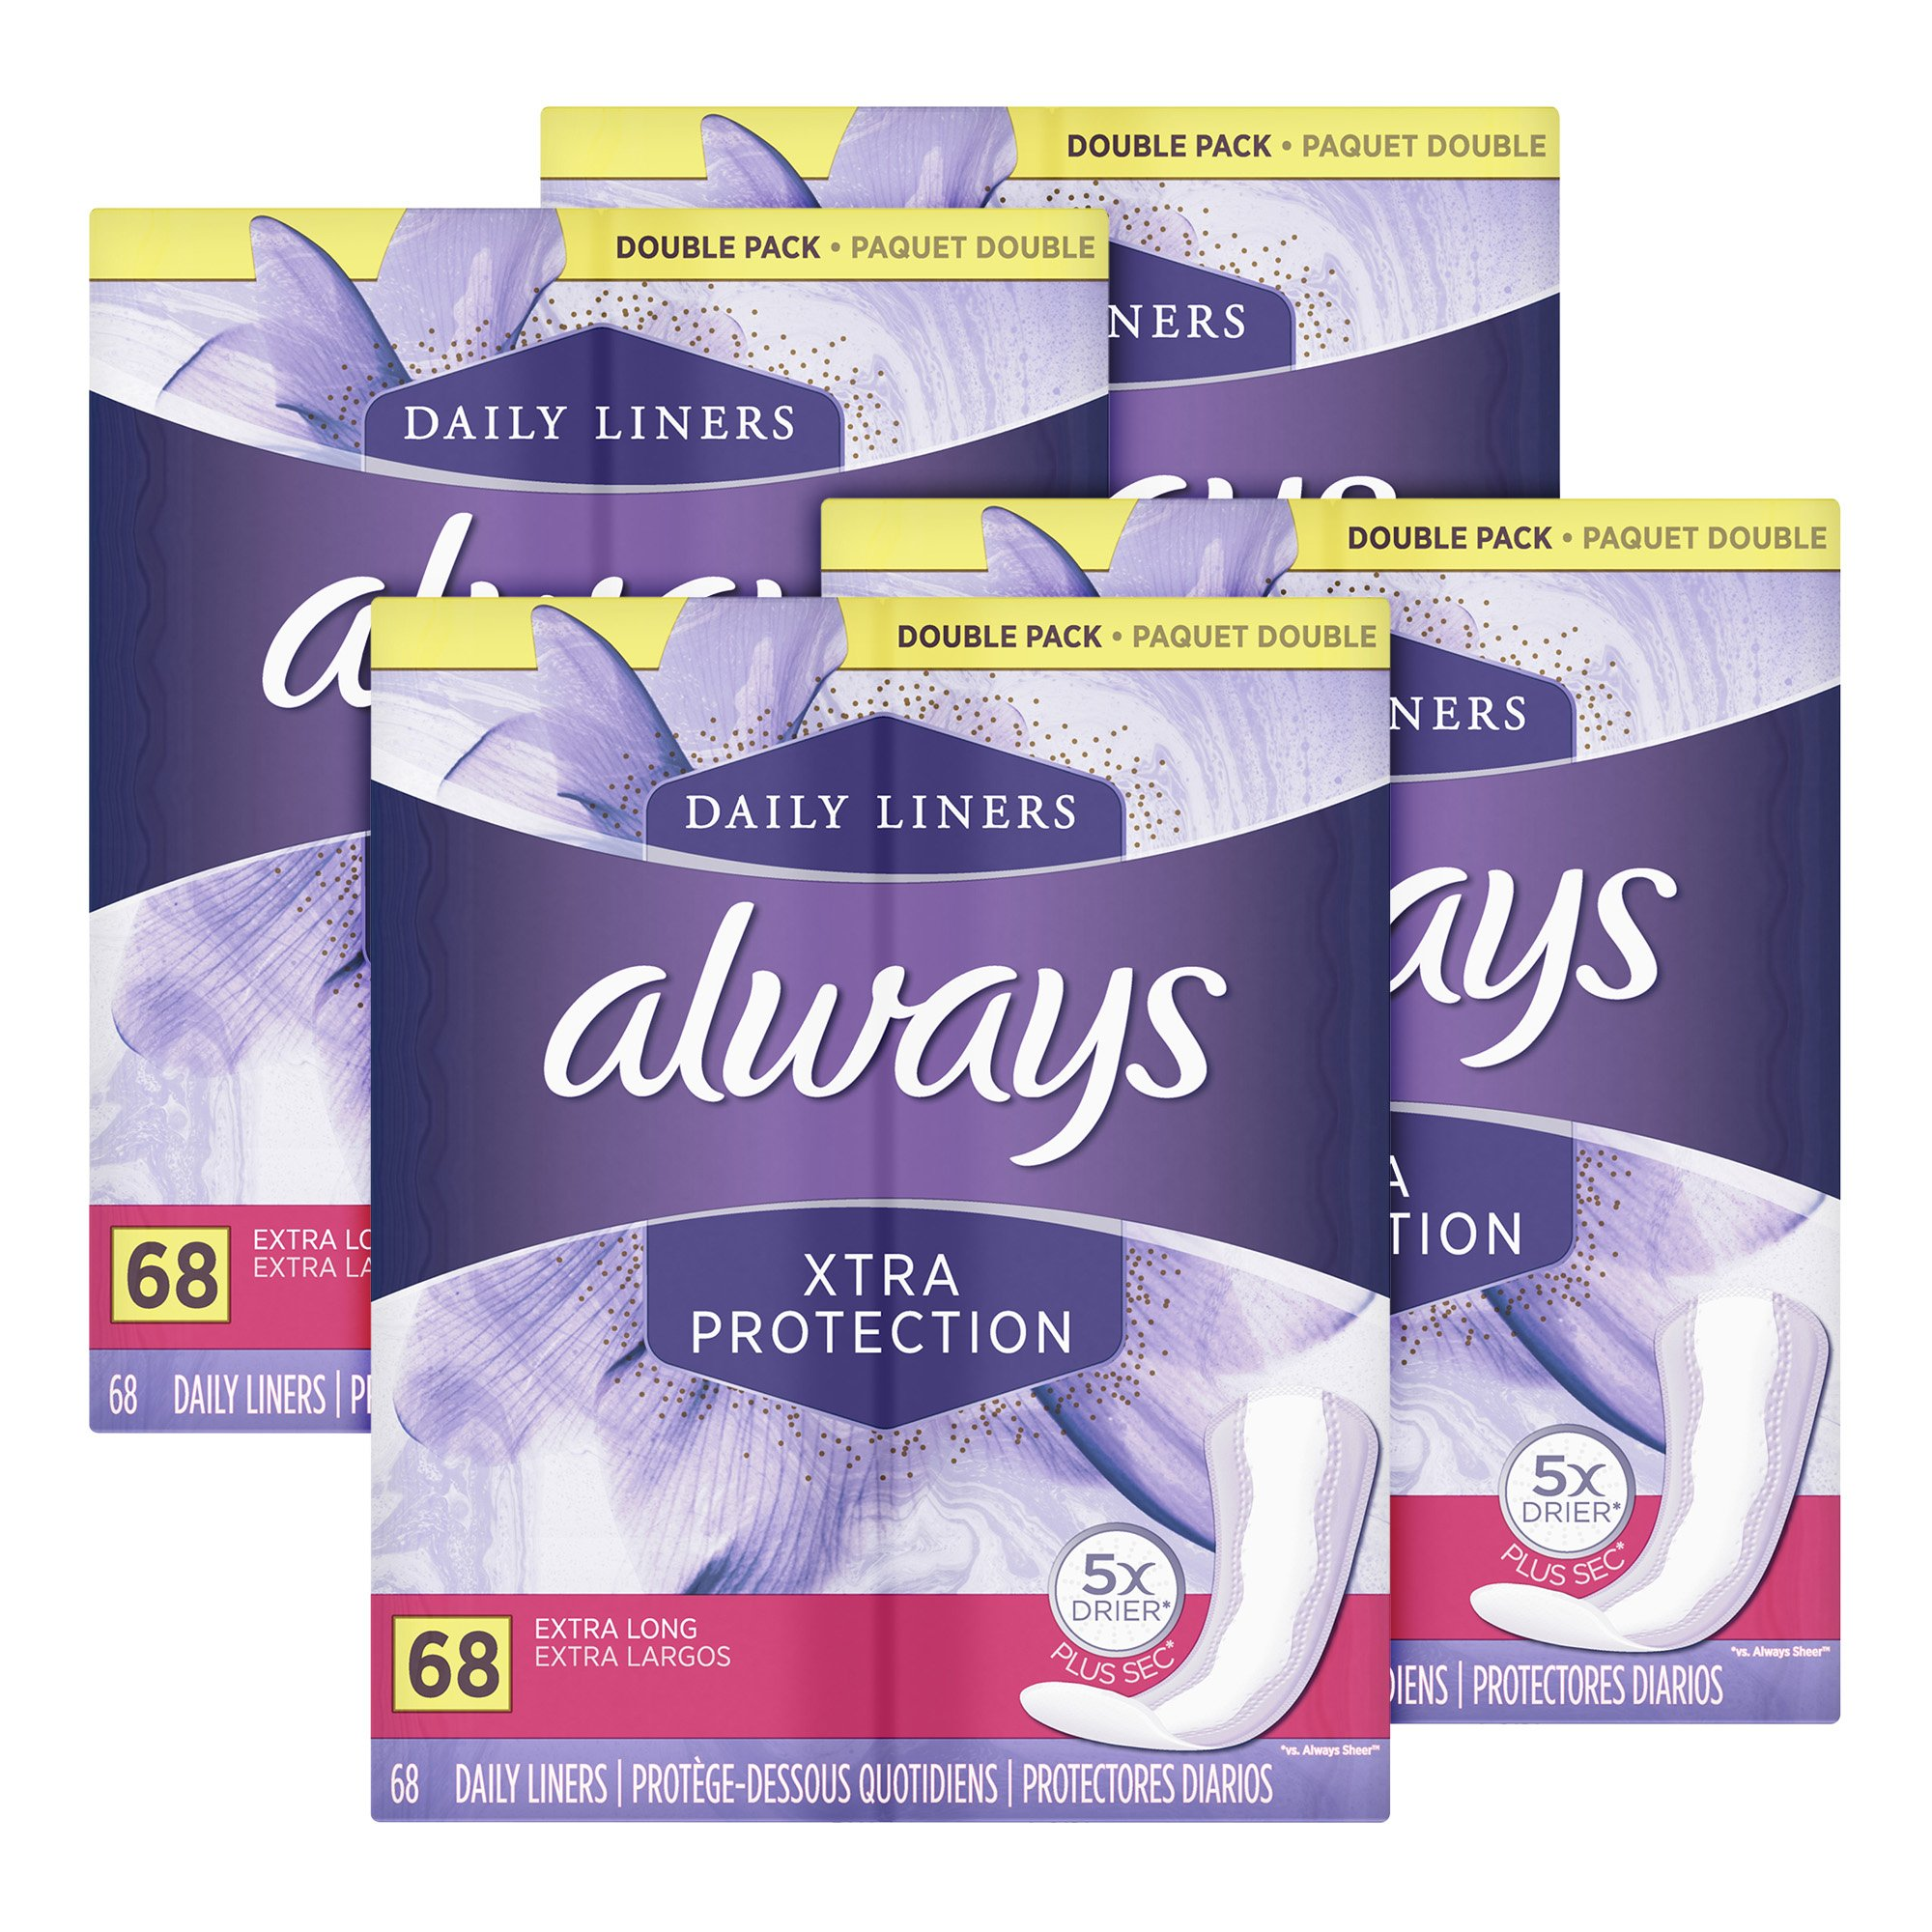 Always Xtra Protection Daily Liners, Extra Long Feminine Panty Liners, 68 Count - Pack of 4 (272 Total Count) by Always (Image #1)